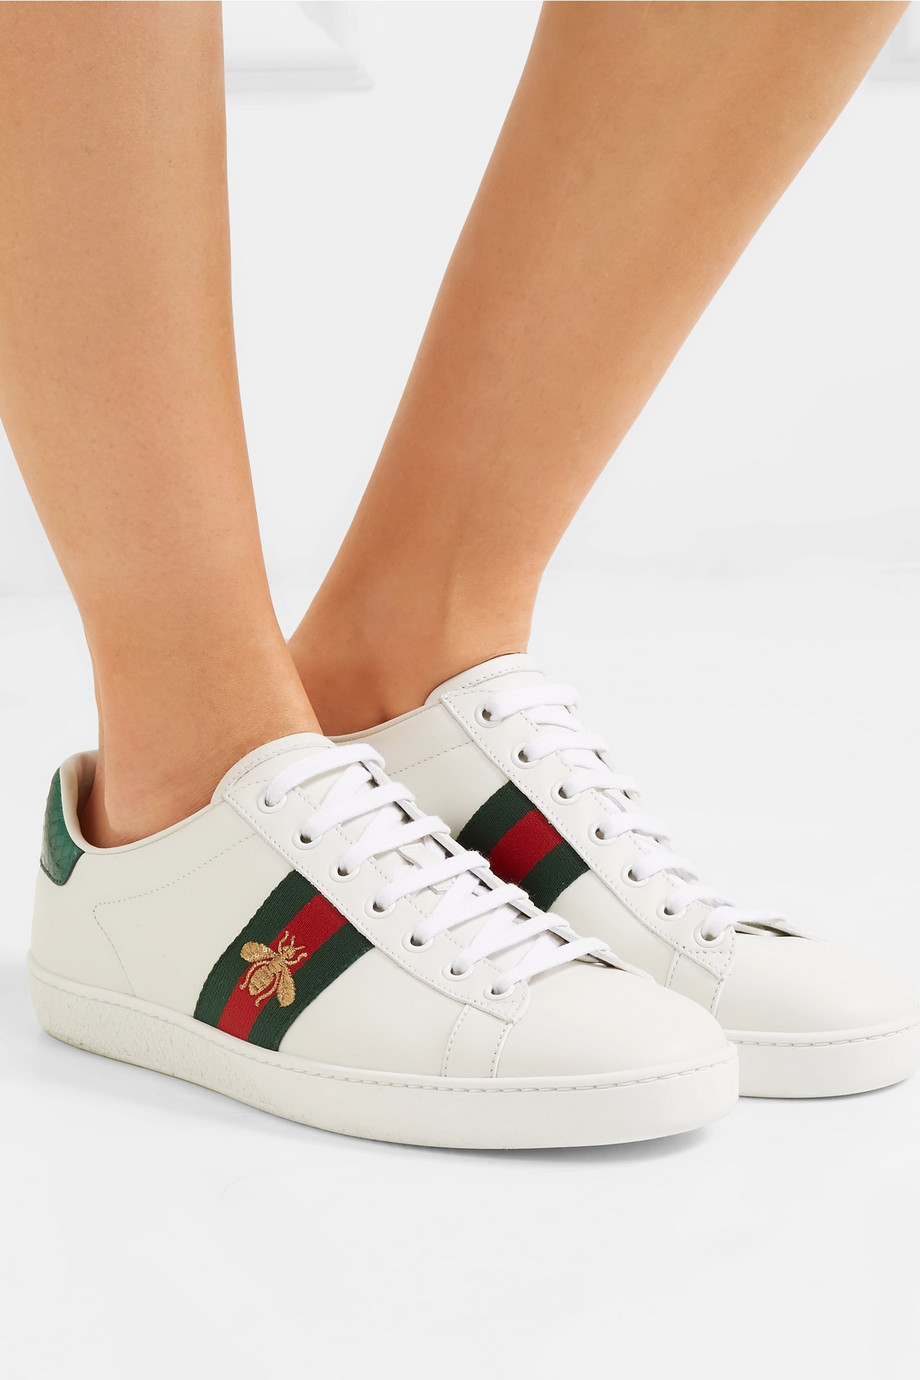 Gucci Bee sneakers GUCCI // ACE Sneakers – Bee